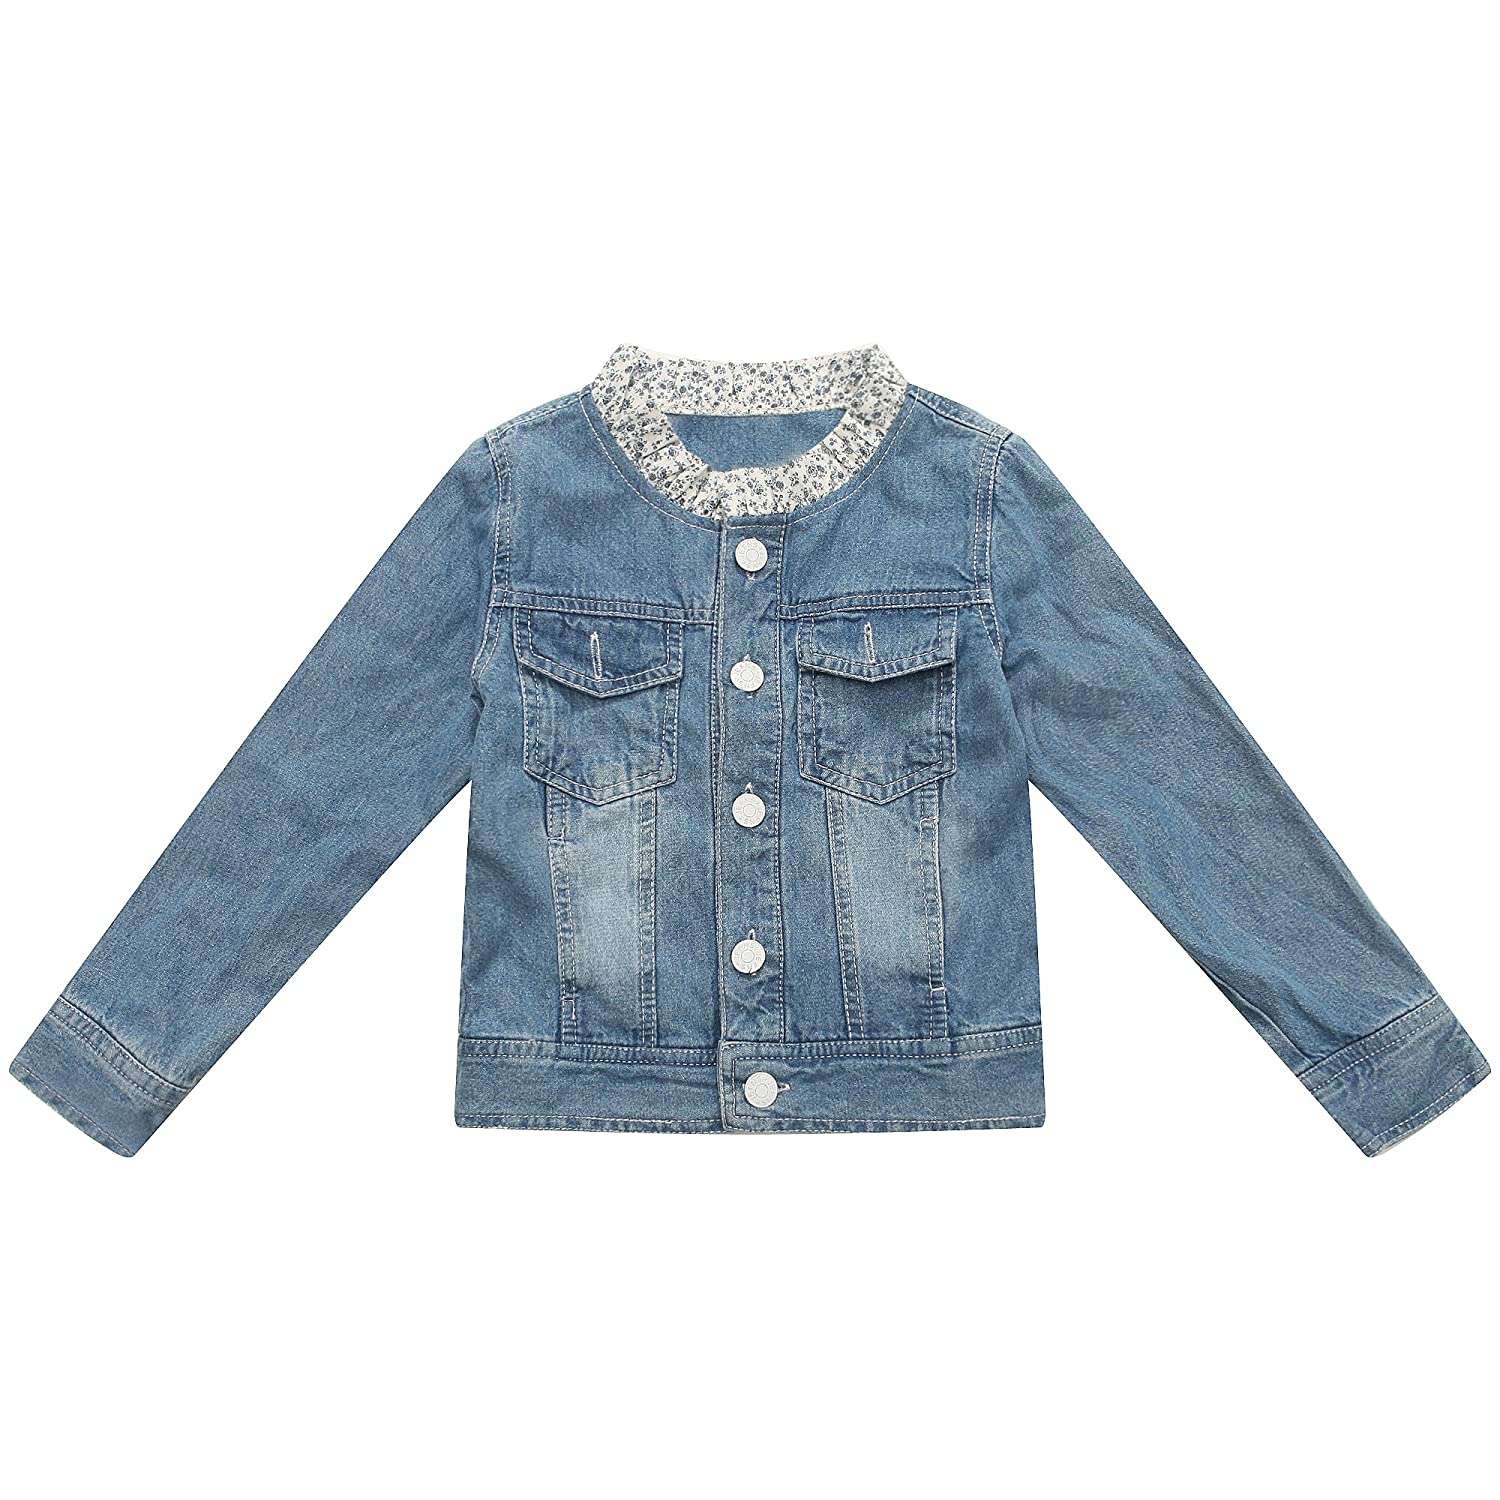 Richie House Little Girls' Denim Jacket Rh1494